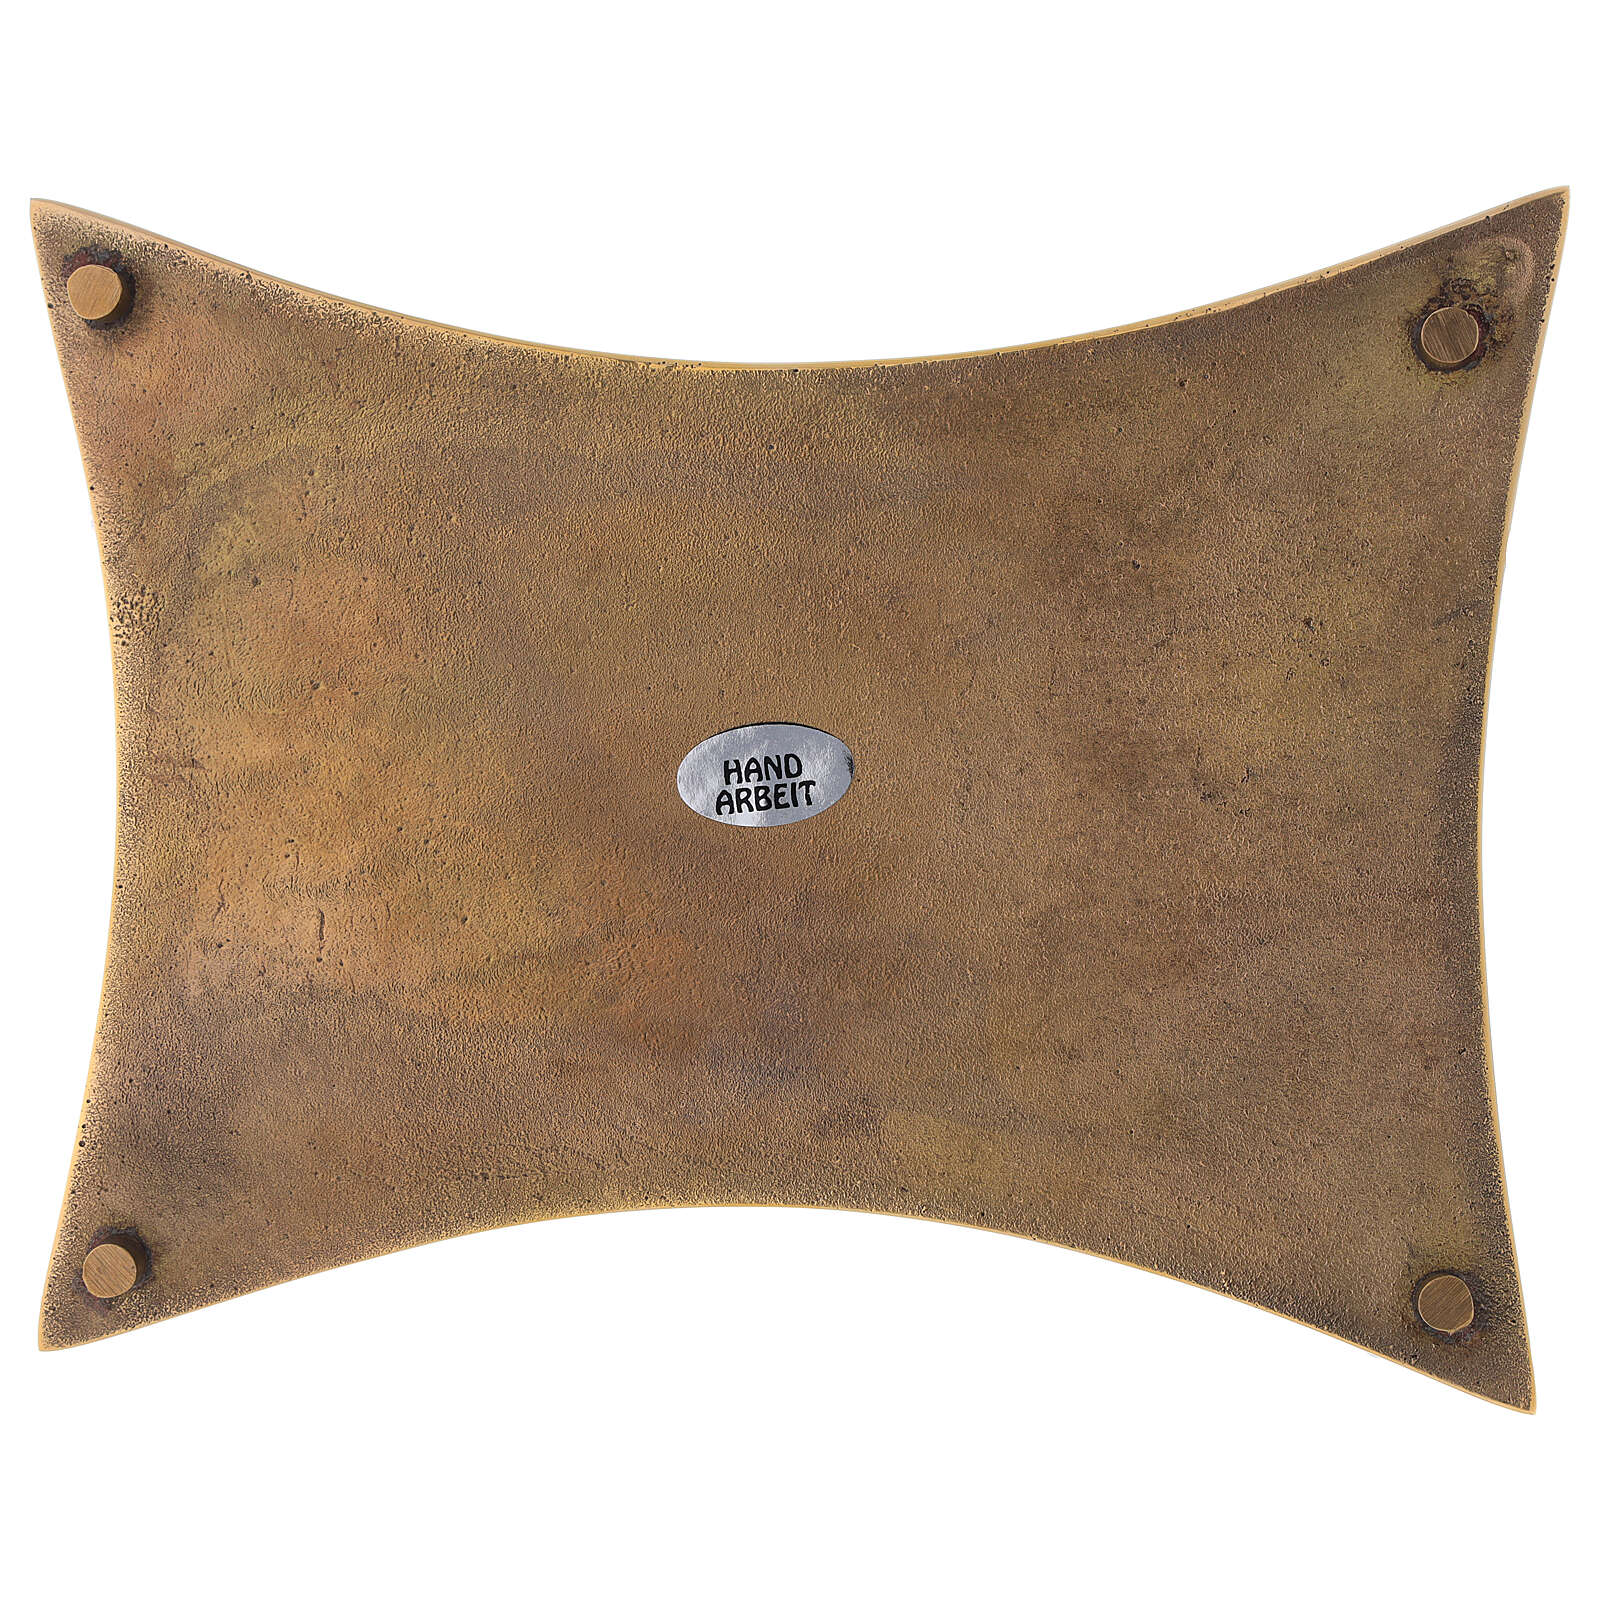 Plate for candles concave sides polished brass 18x14 cm 3